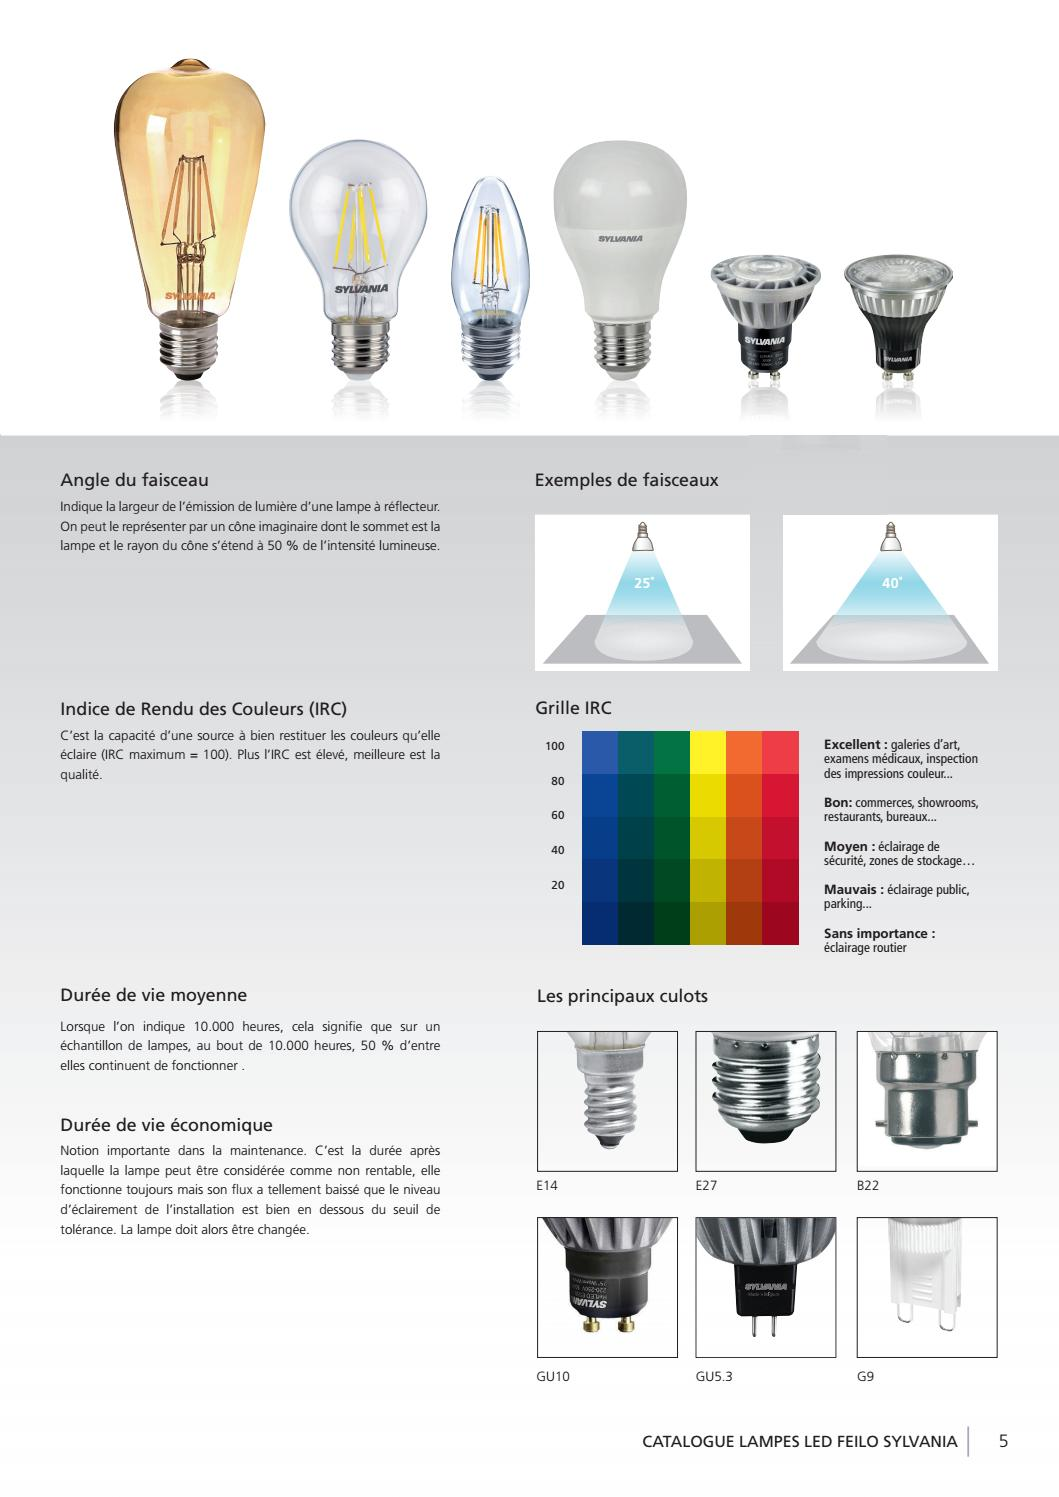 Sept Led Issuu Sylvania Bat World By Catalogue Lamps Yvb6ygIf7